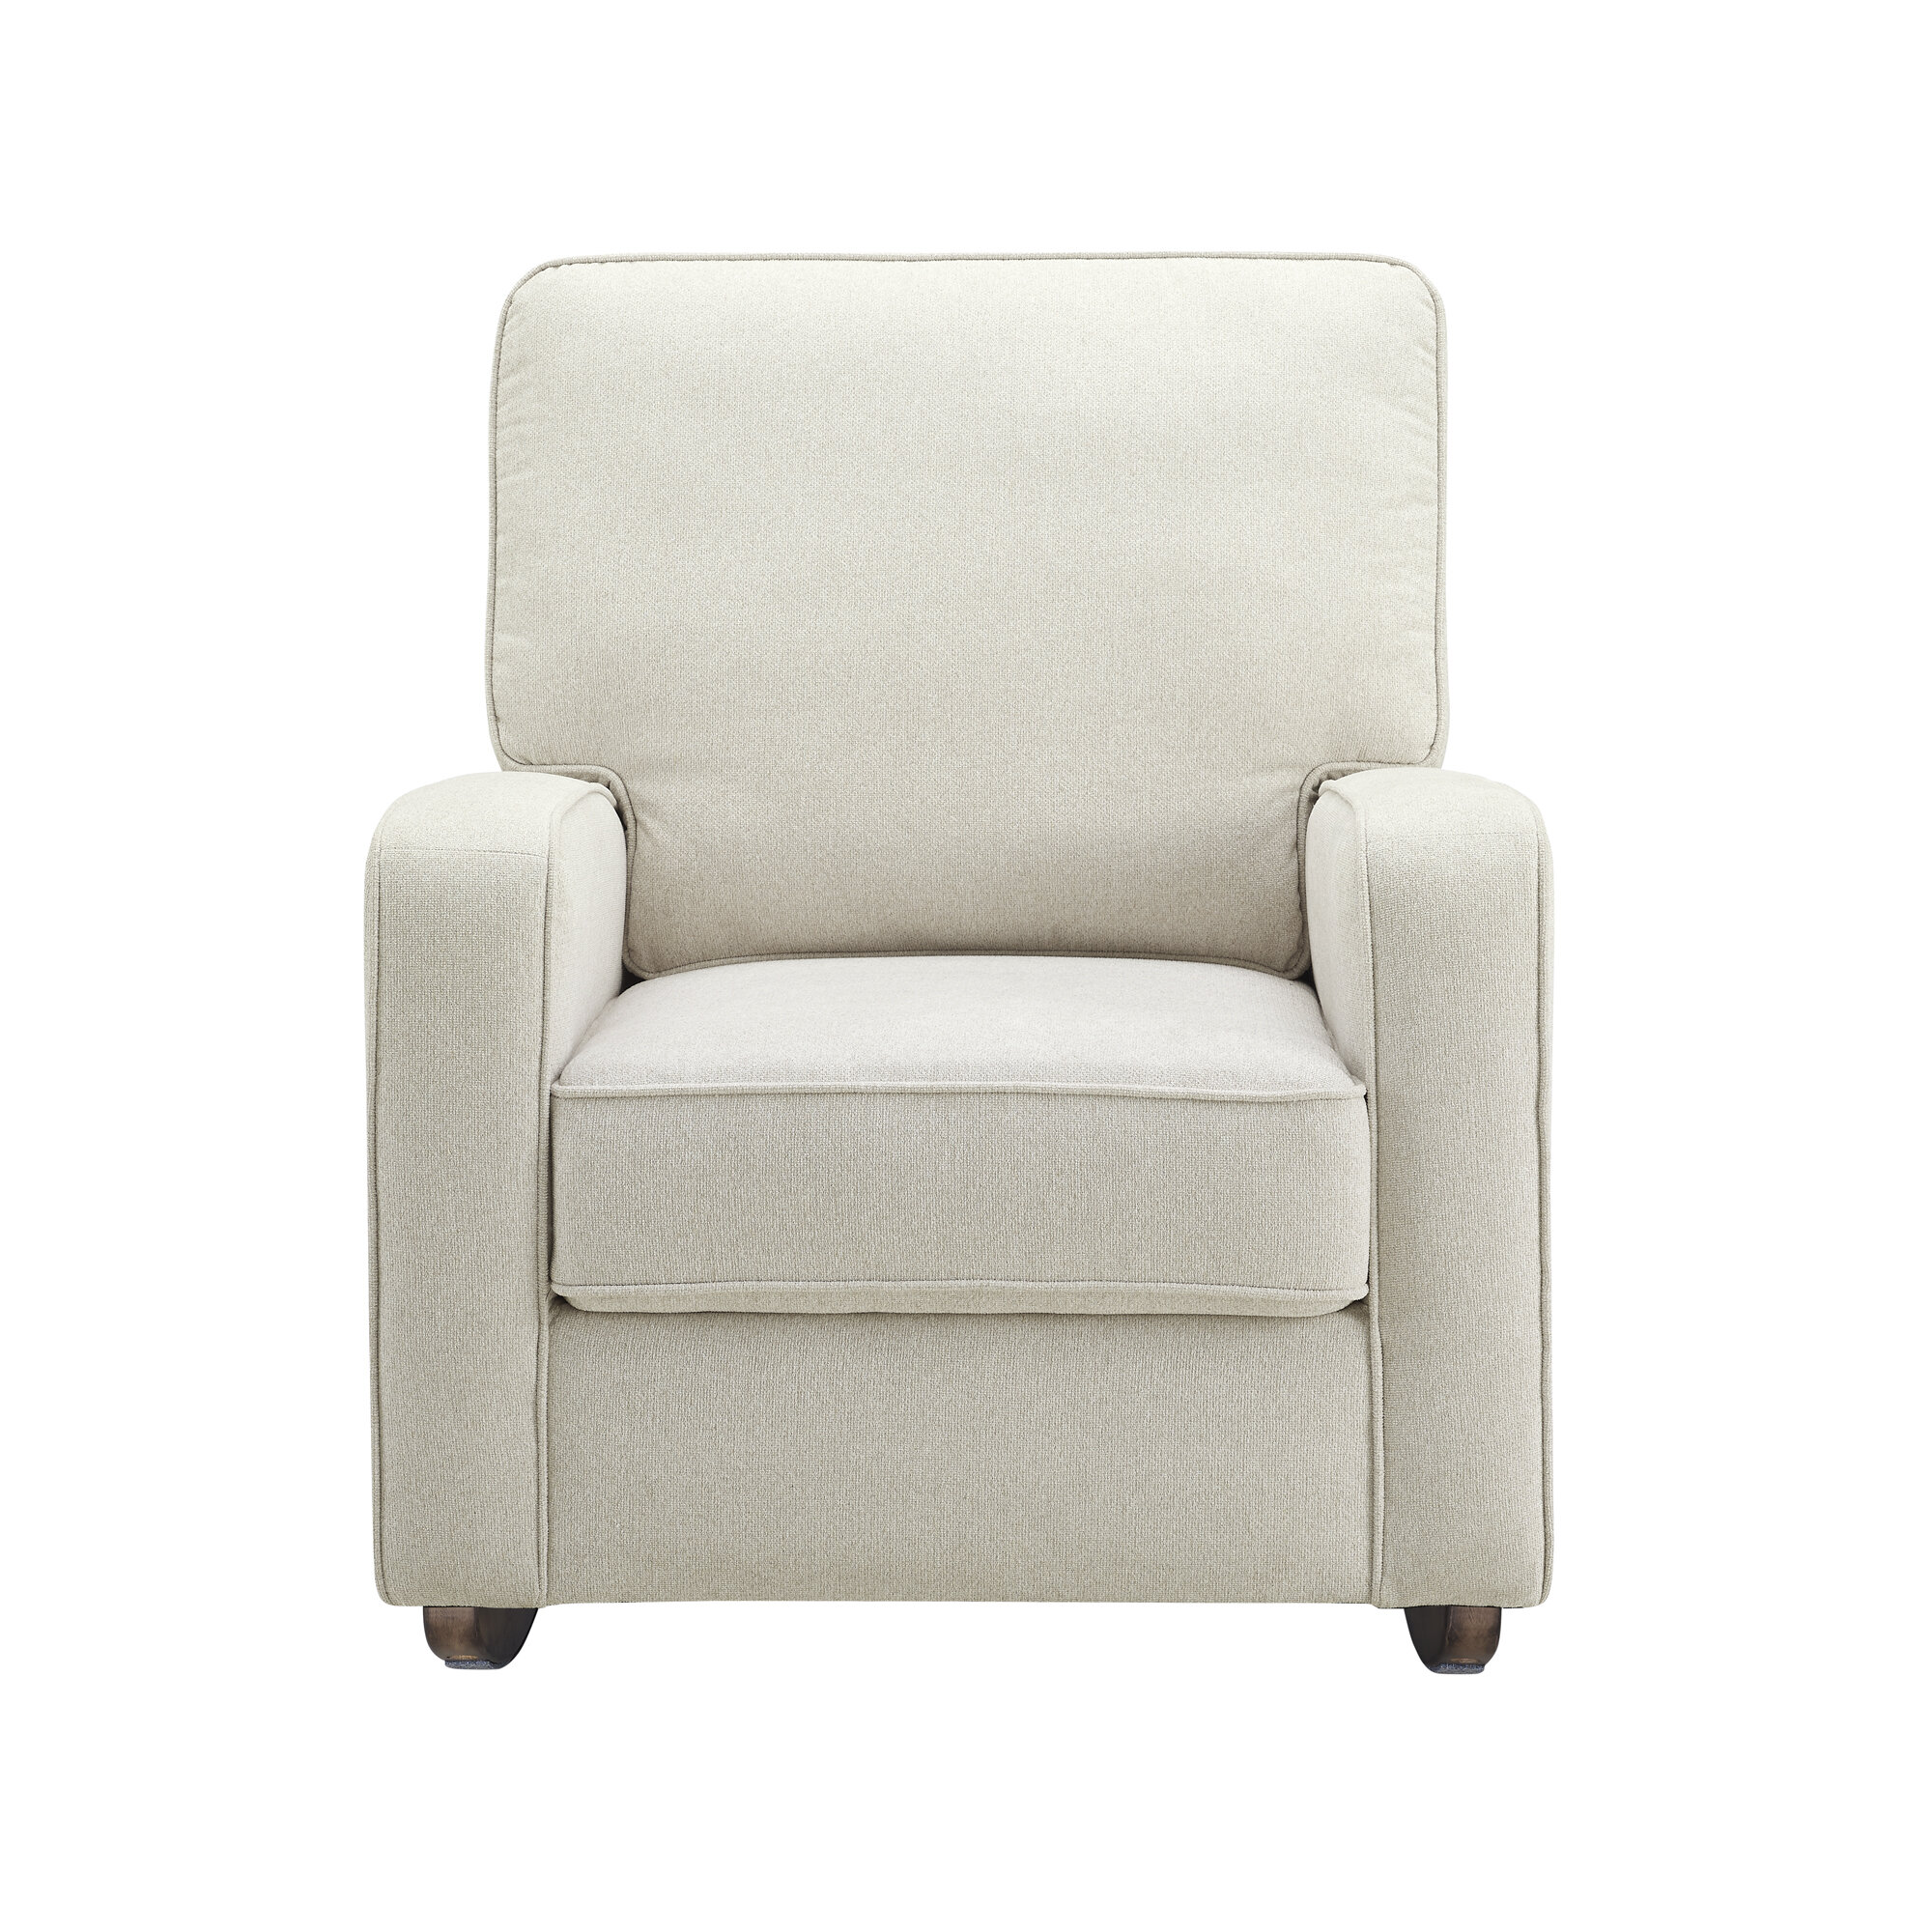 Janda Nursey Chair Glider